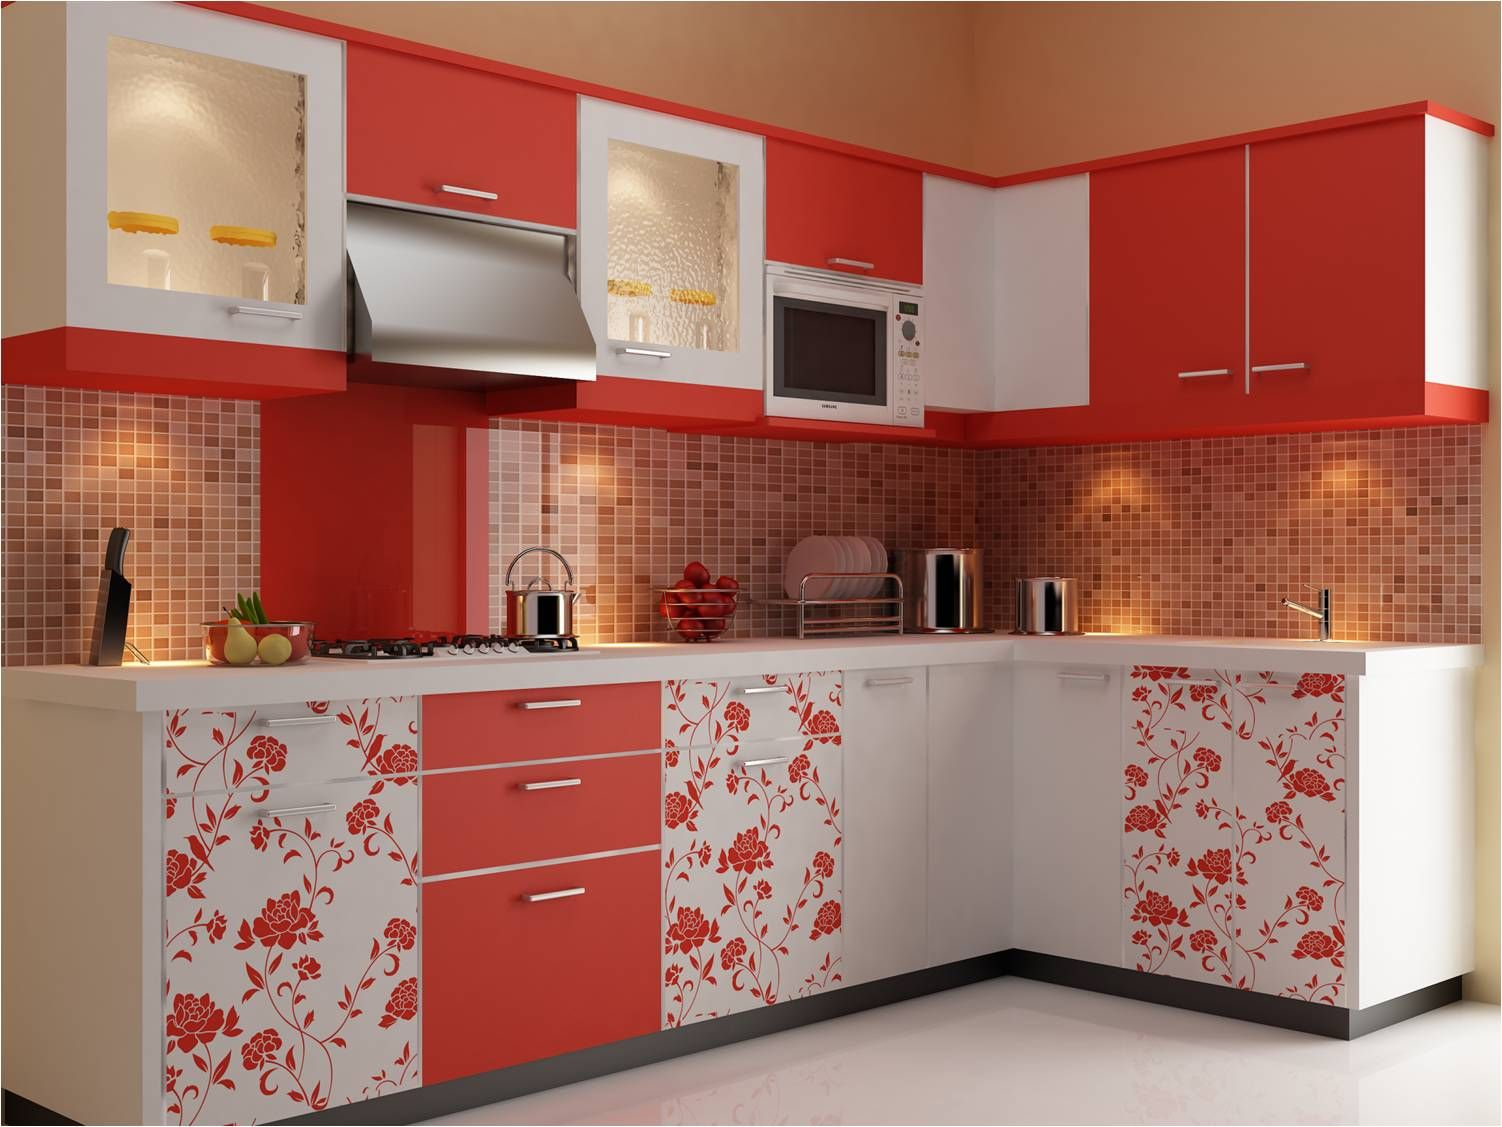 9 best tambaram modular kitchen images on pinterest kitchen kitchen design exciting pink modular kitchen design furniture with floral and brown square tile wall decor ideas feats red white cabinetary also modern